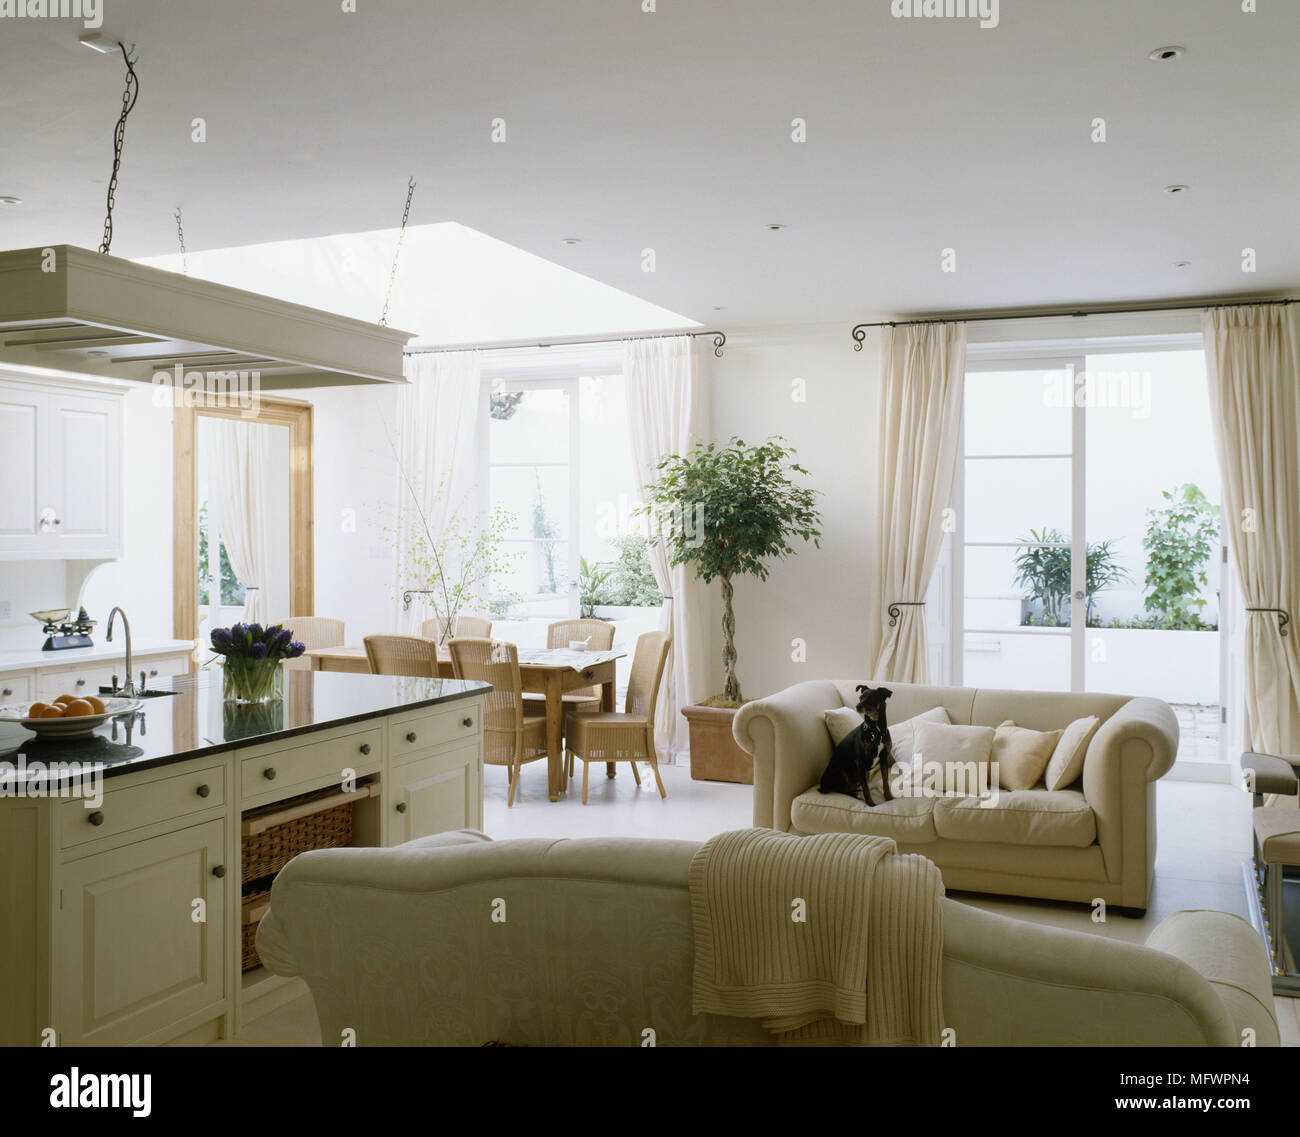 Light and airy open plan kitchen and dining room with extractor fan ...